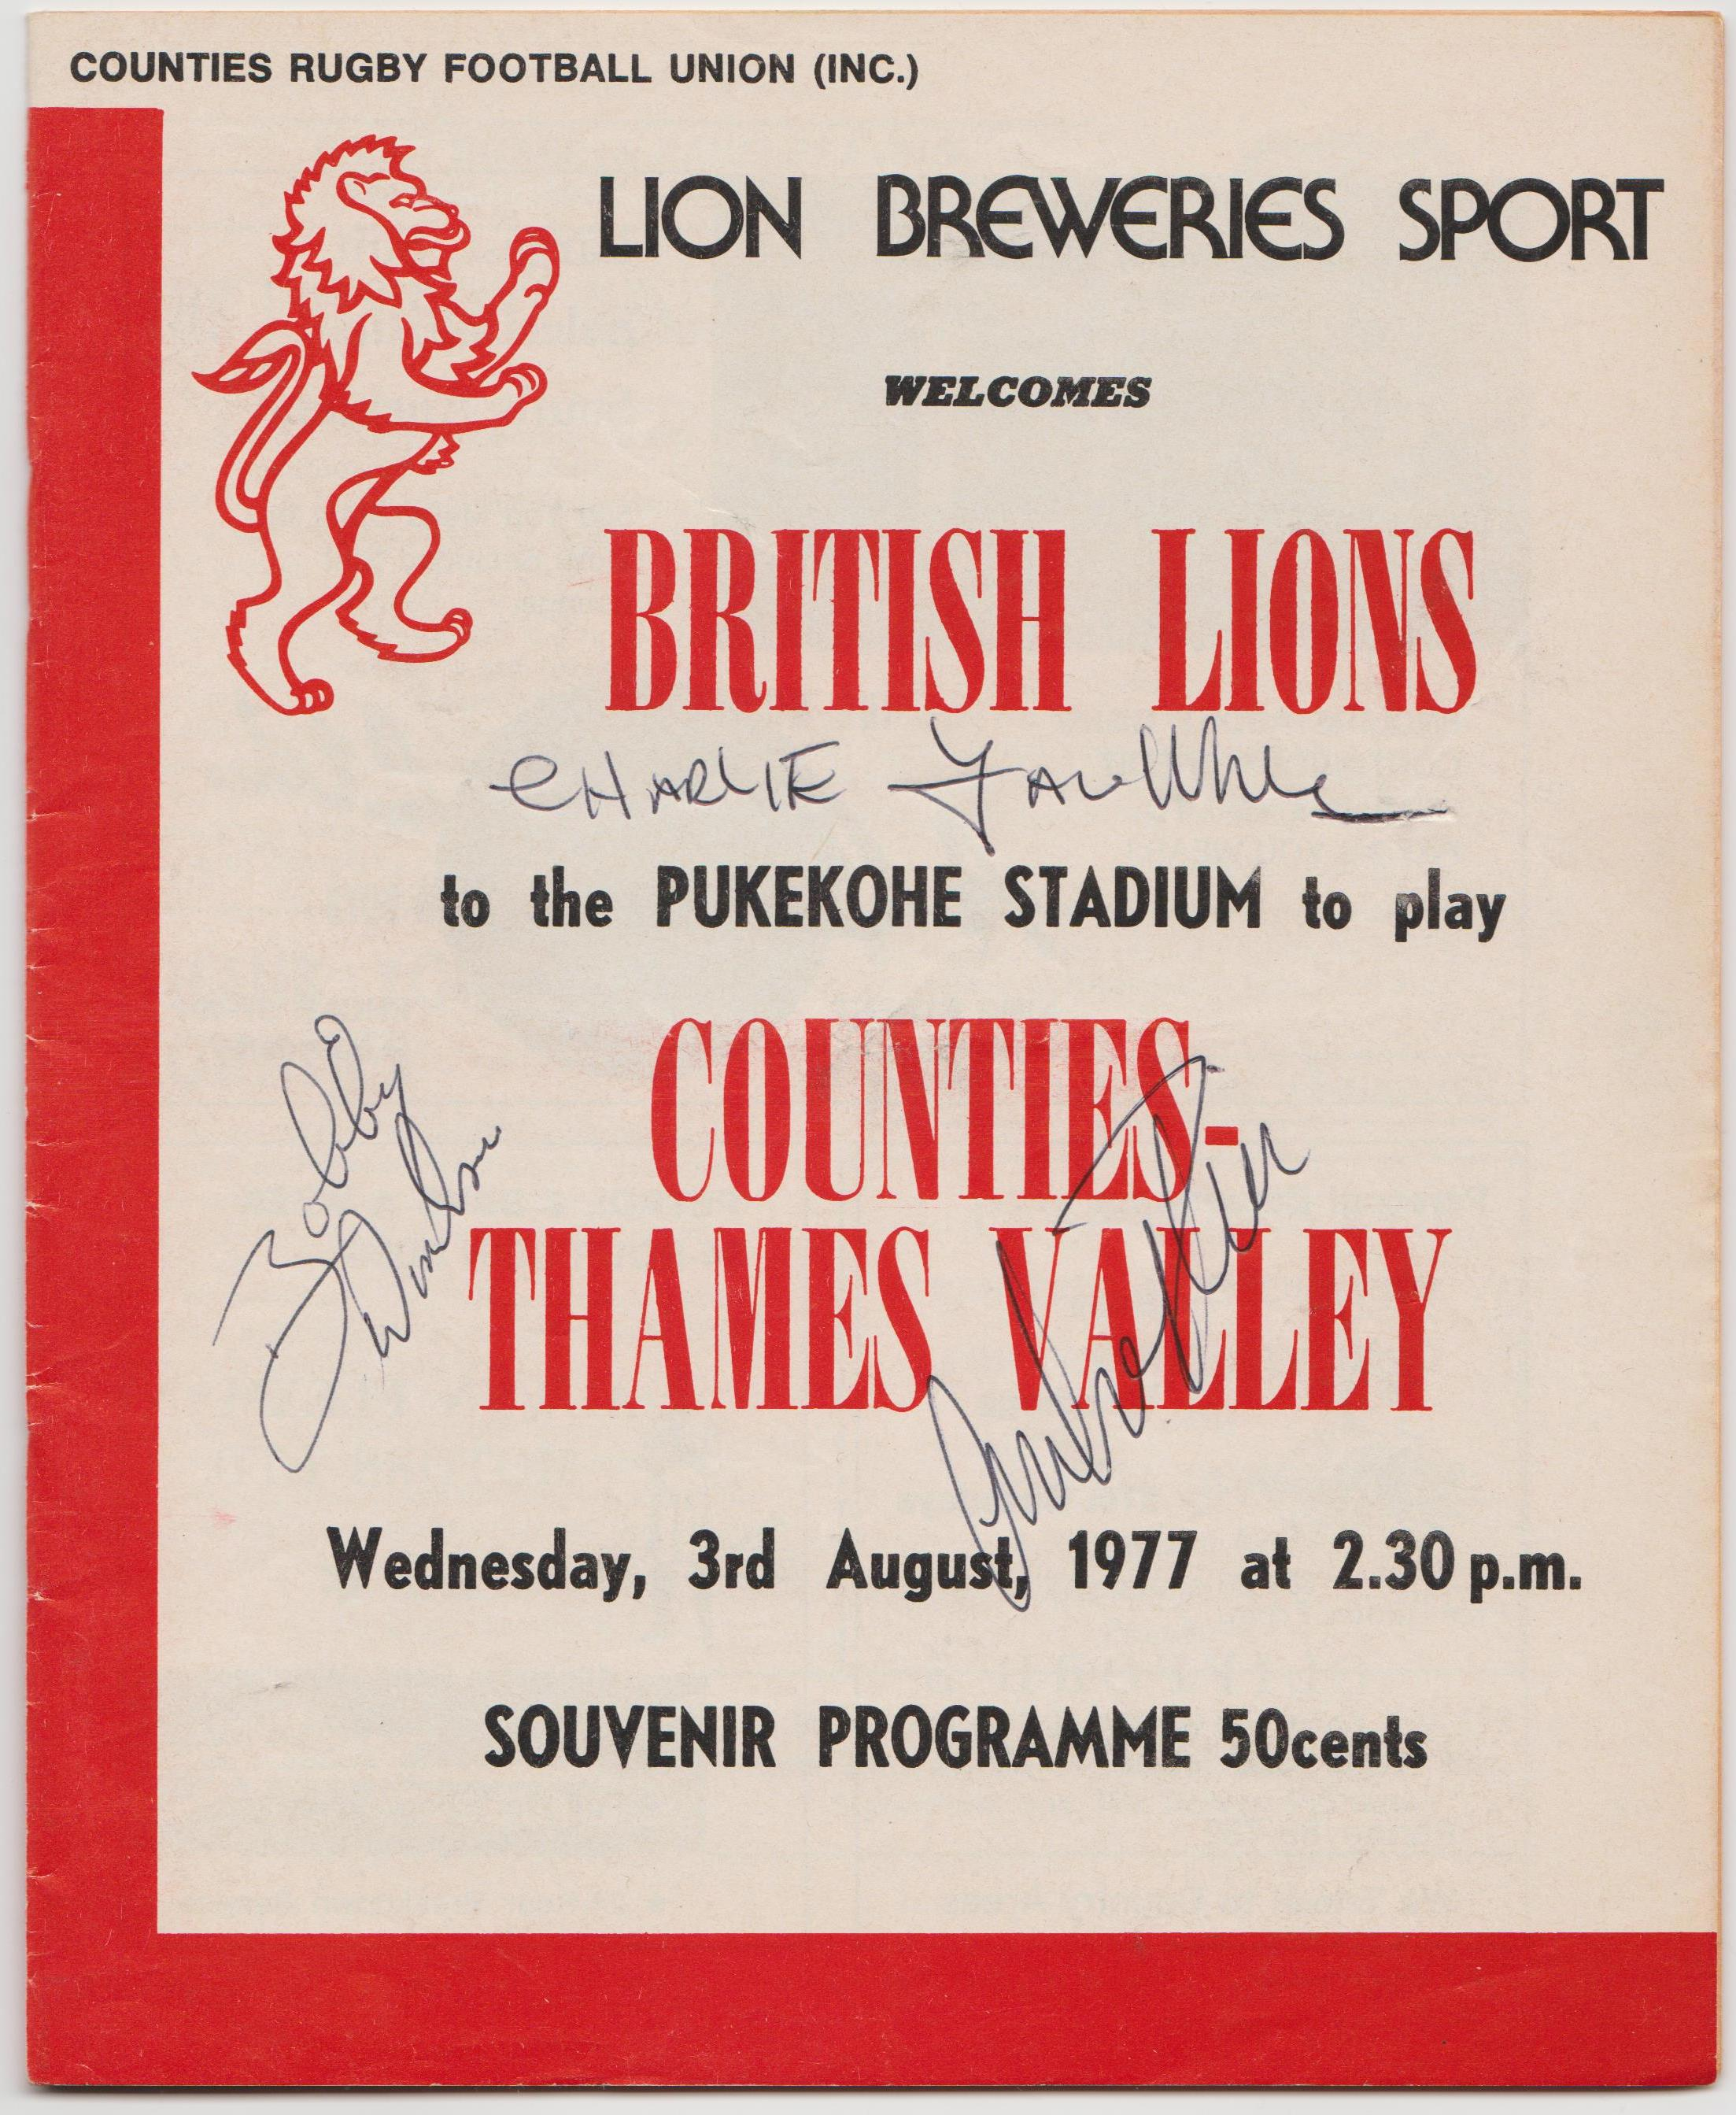 1977 Counties-Thames Valley v British Lions (programme) Rugby Memorabilia Society